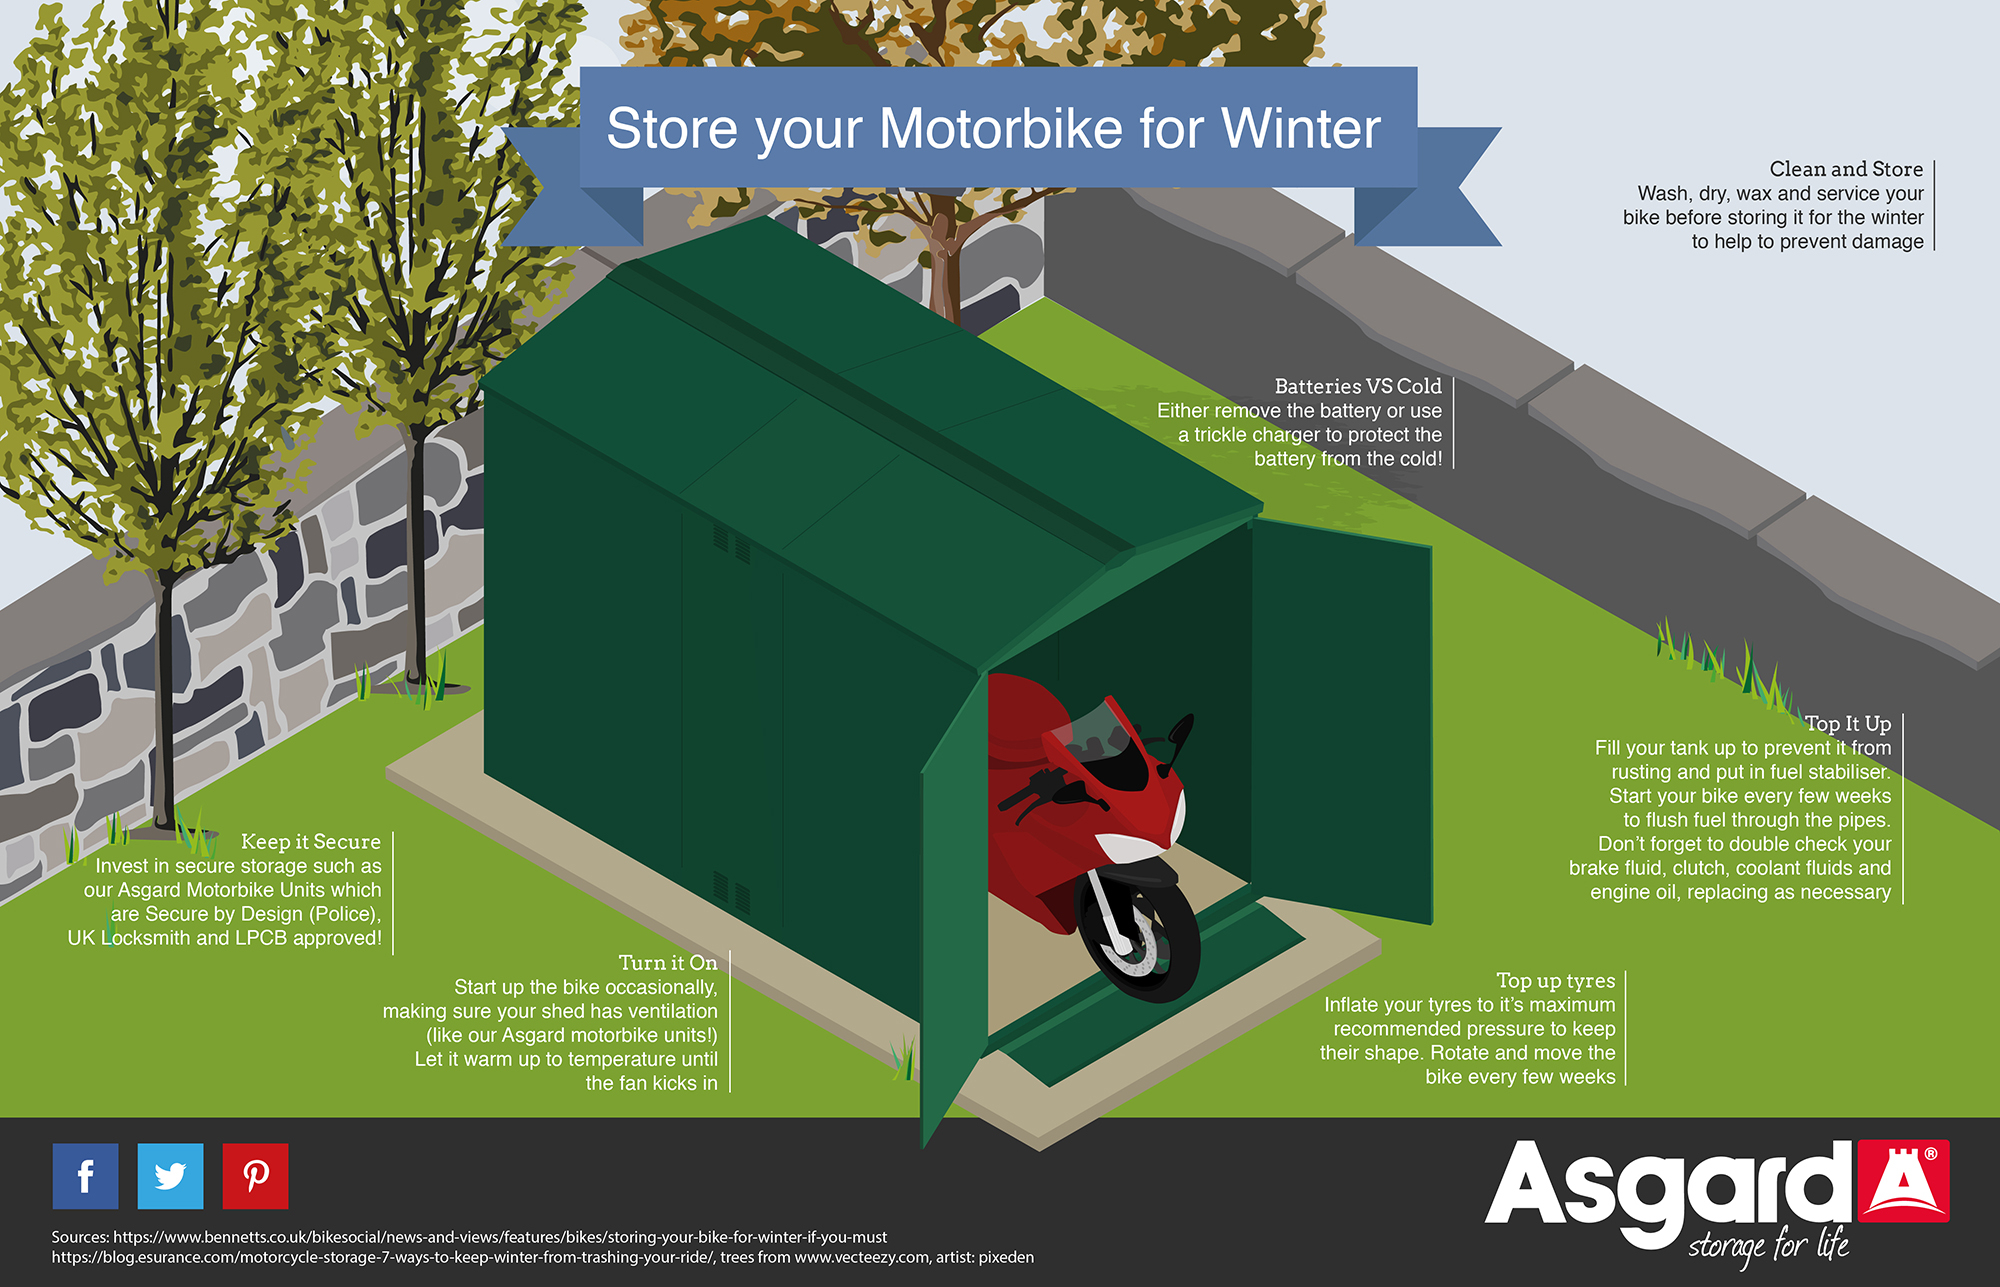 Storing you Motorbike for winter